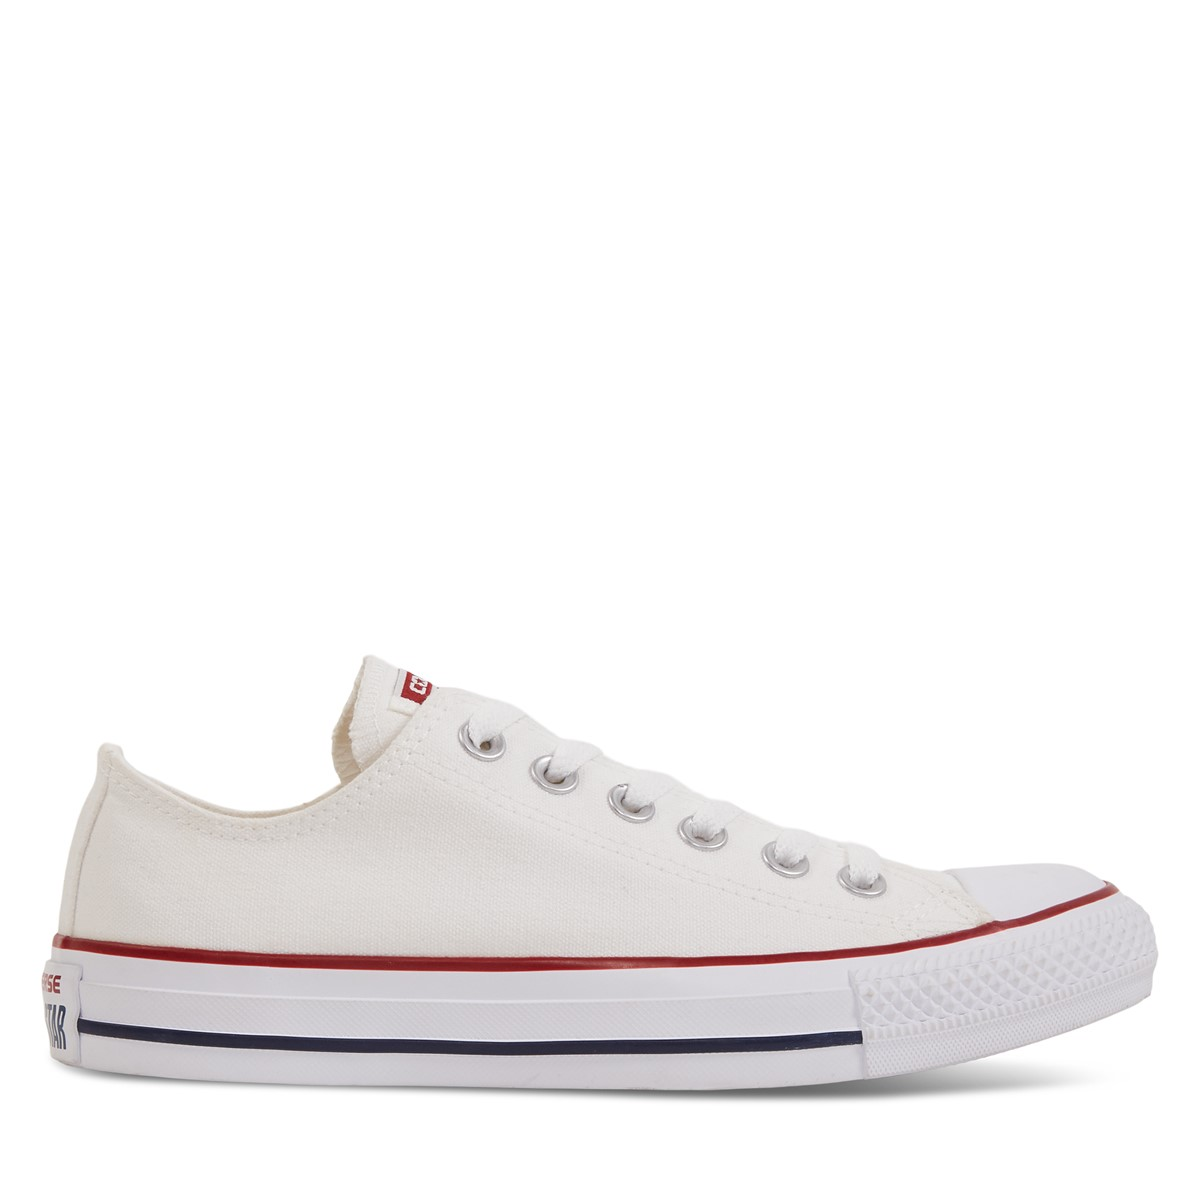 Women's Chuck Taylor All Star Low Top Sneakers in White